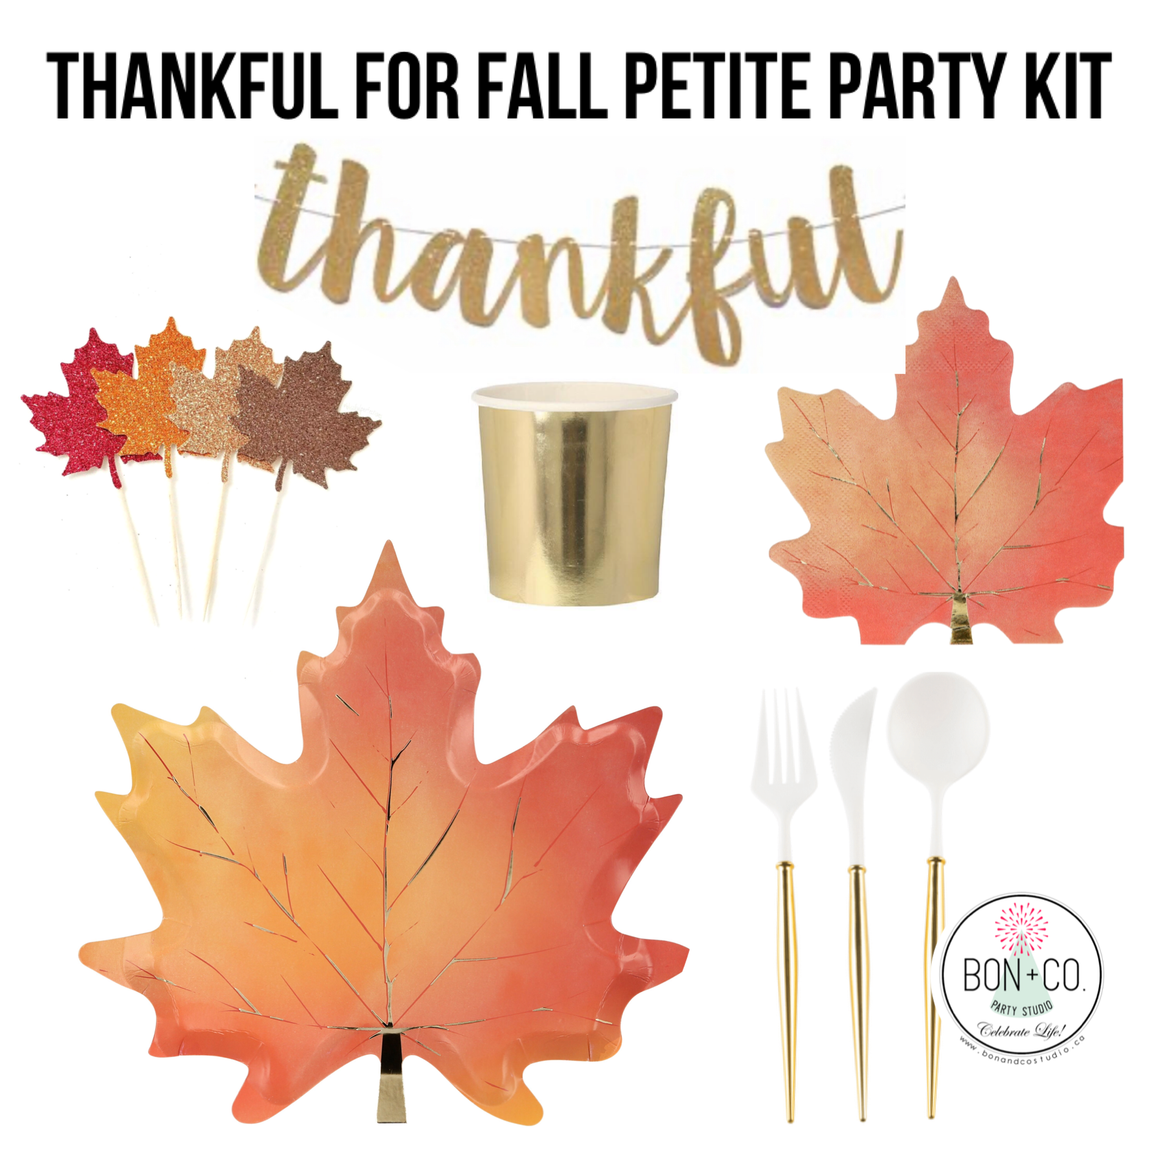 LUXE PETITE PARTY KIT - THANKFUL